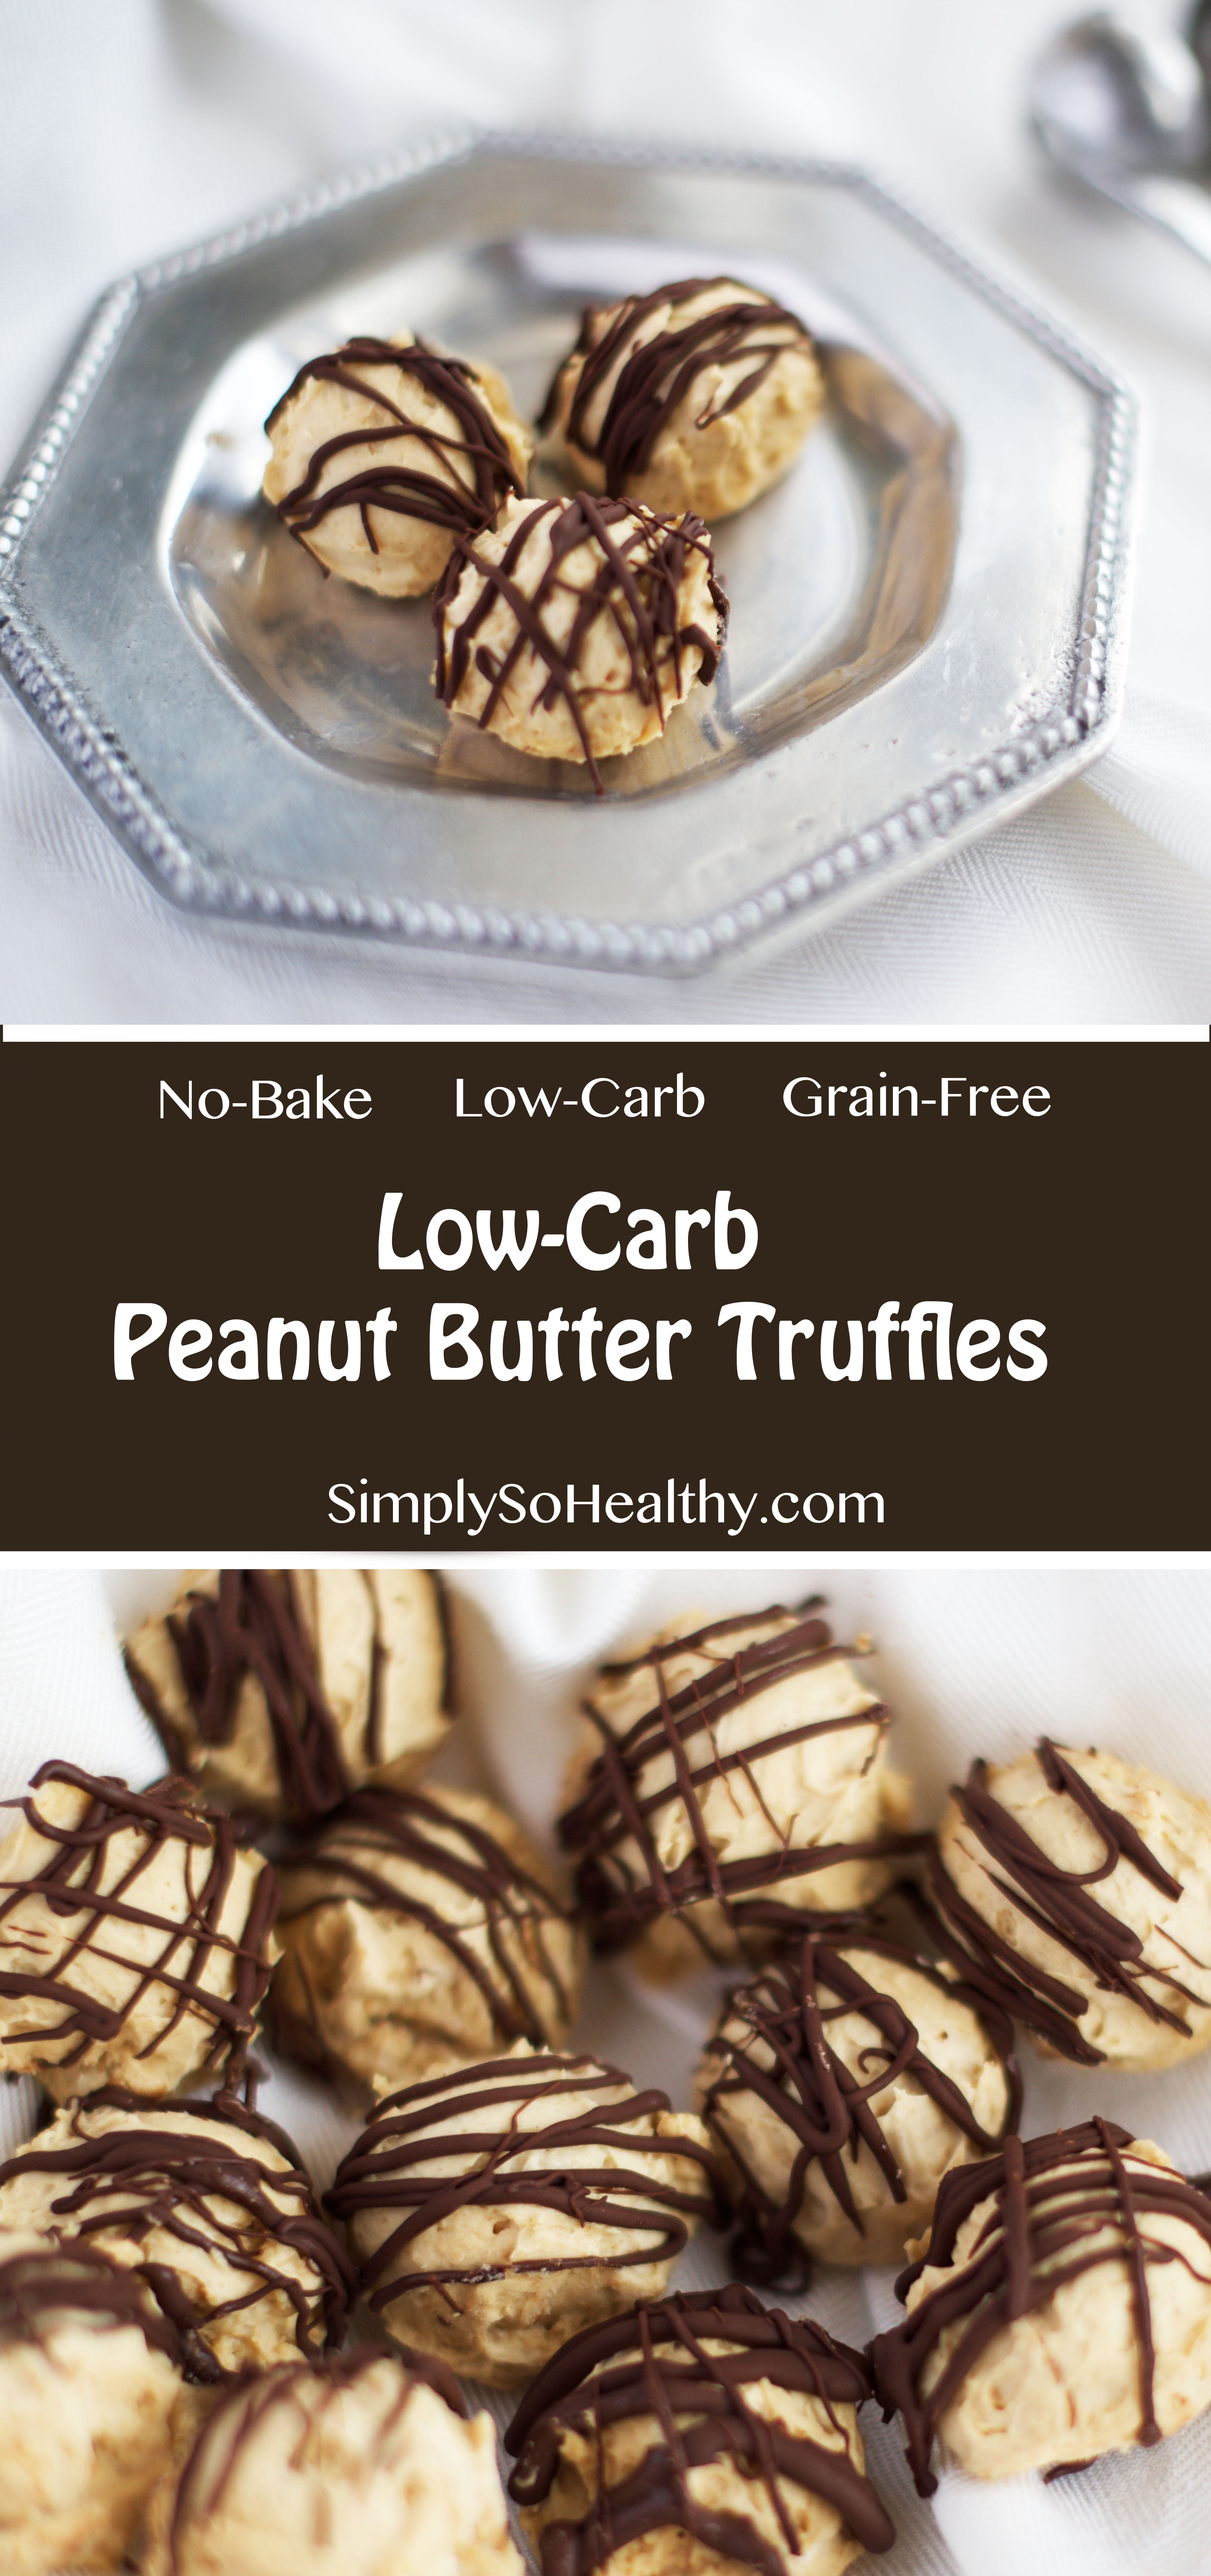 Photo of Low-Carb Peanut Butter Truffles blog cover photo with title text.